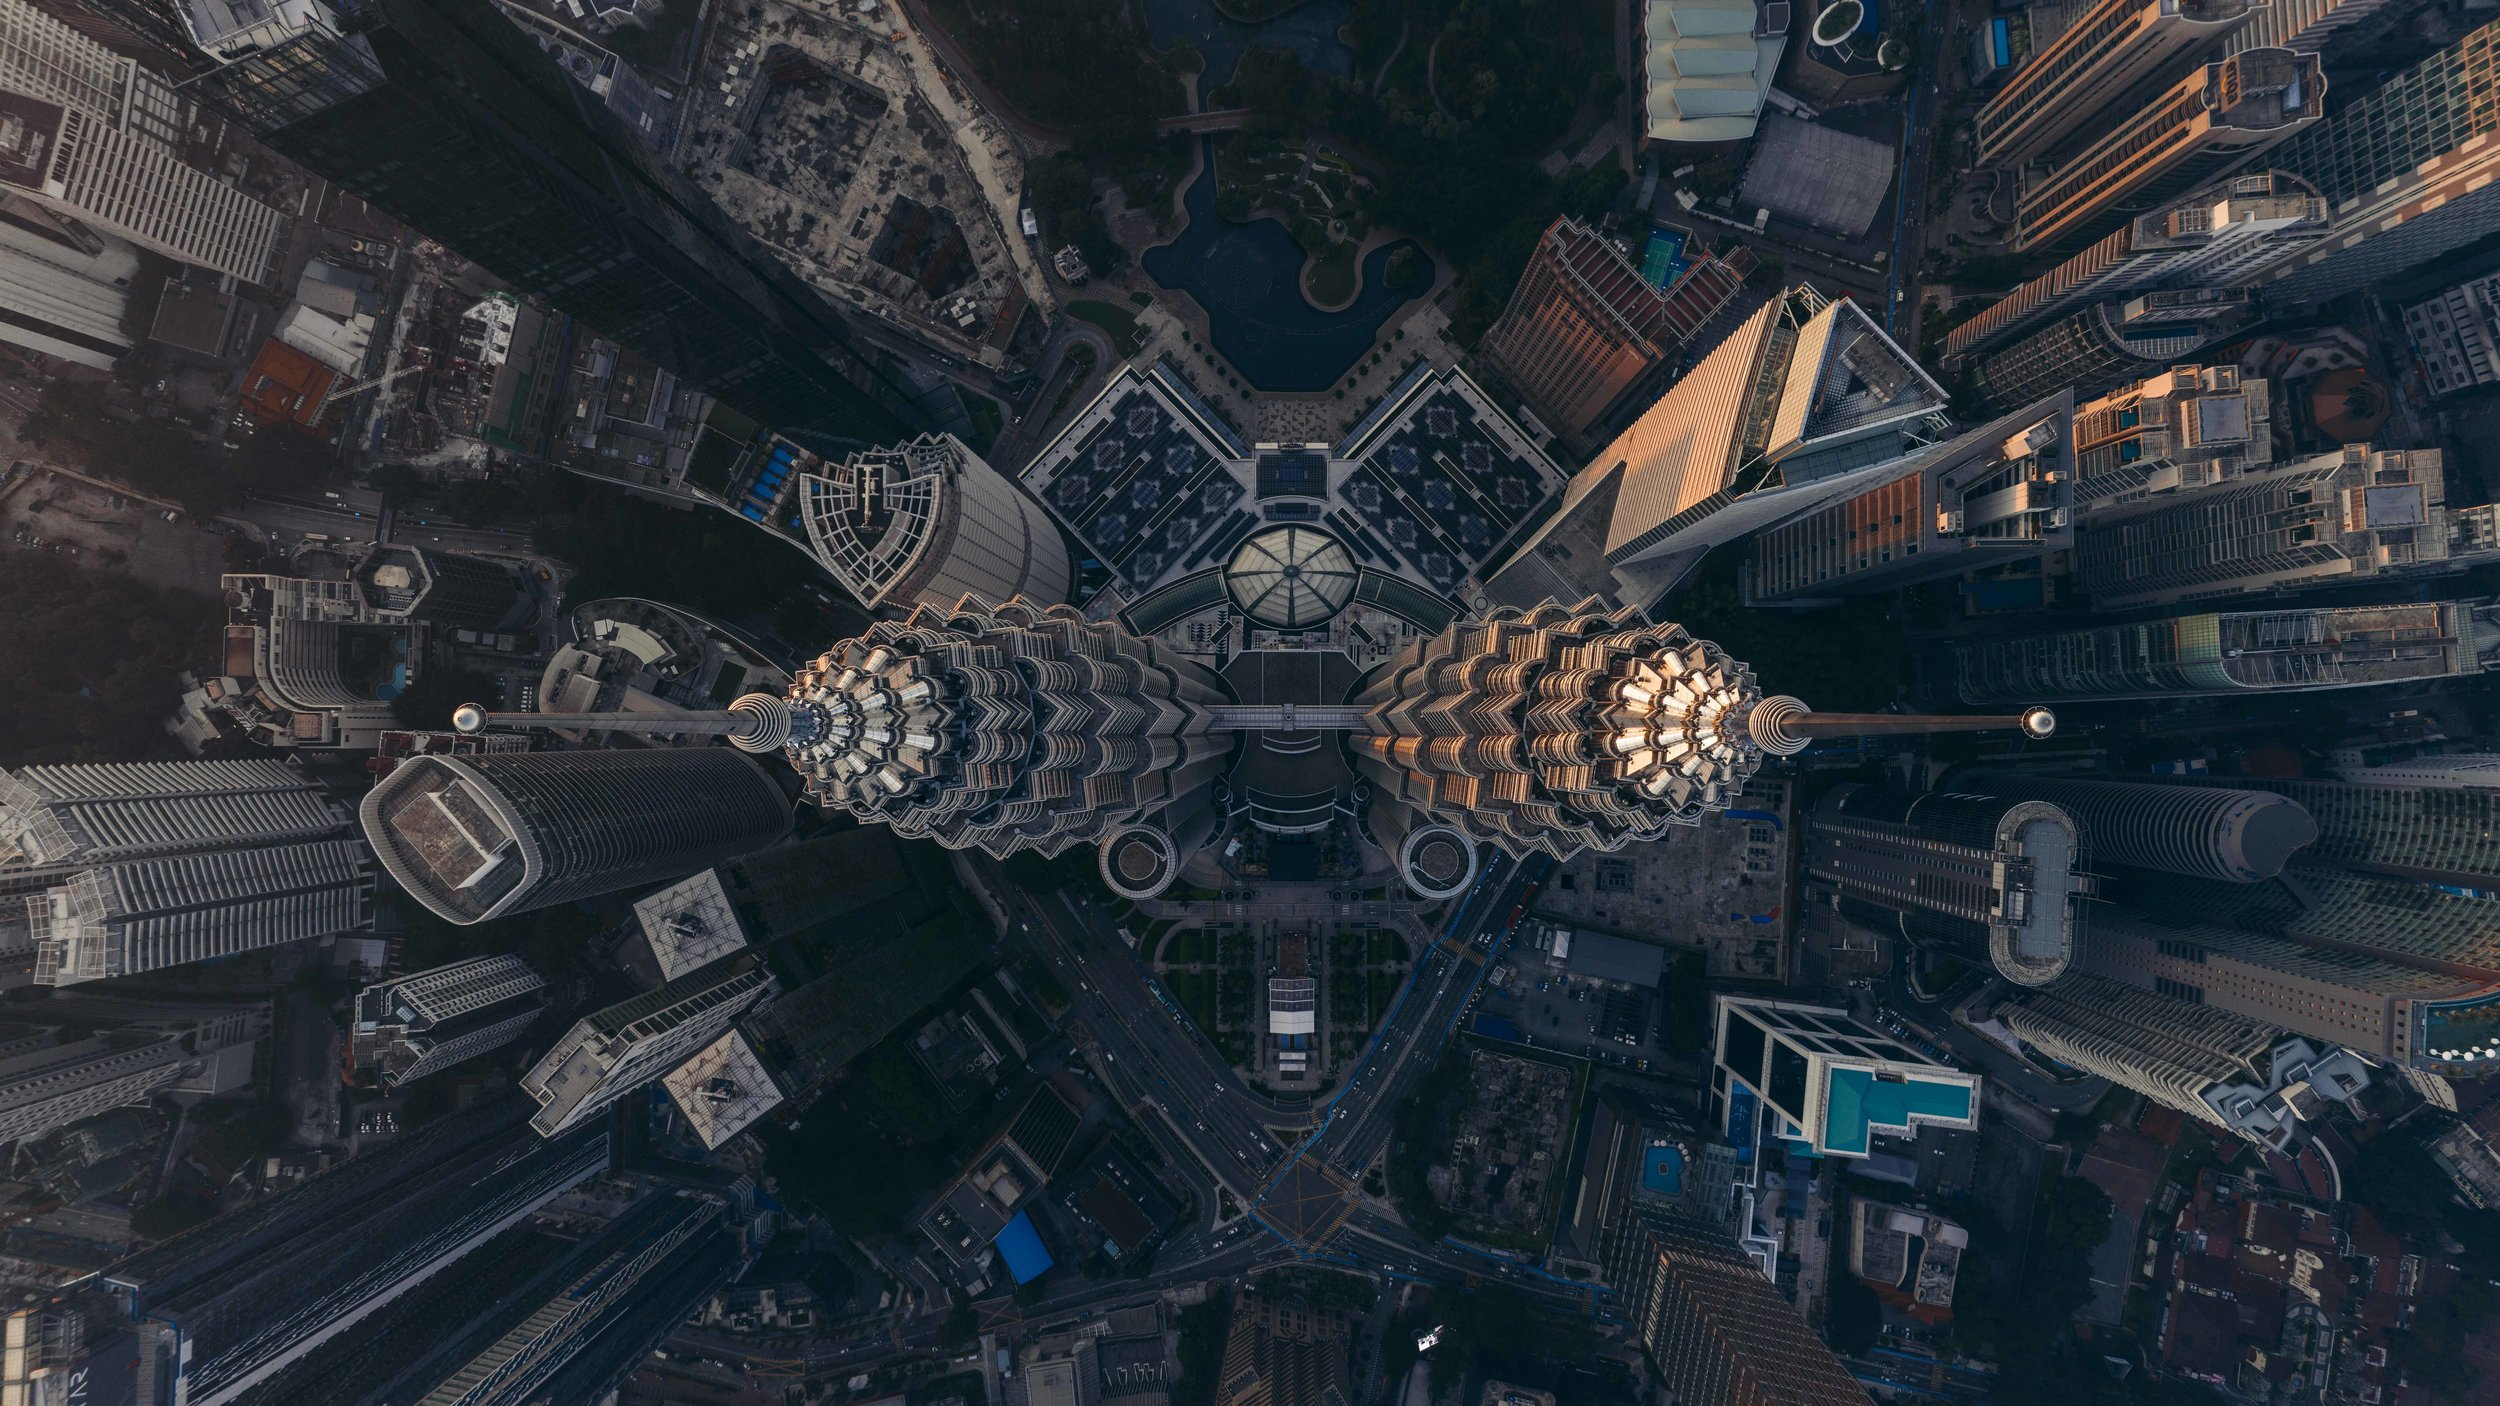 A God's eye view of the Petronas Towers. With only 50 meters of space above, this is probably by risky drone shot!